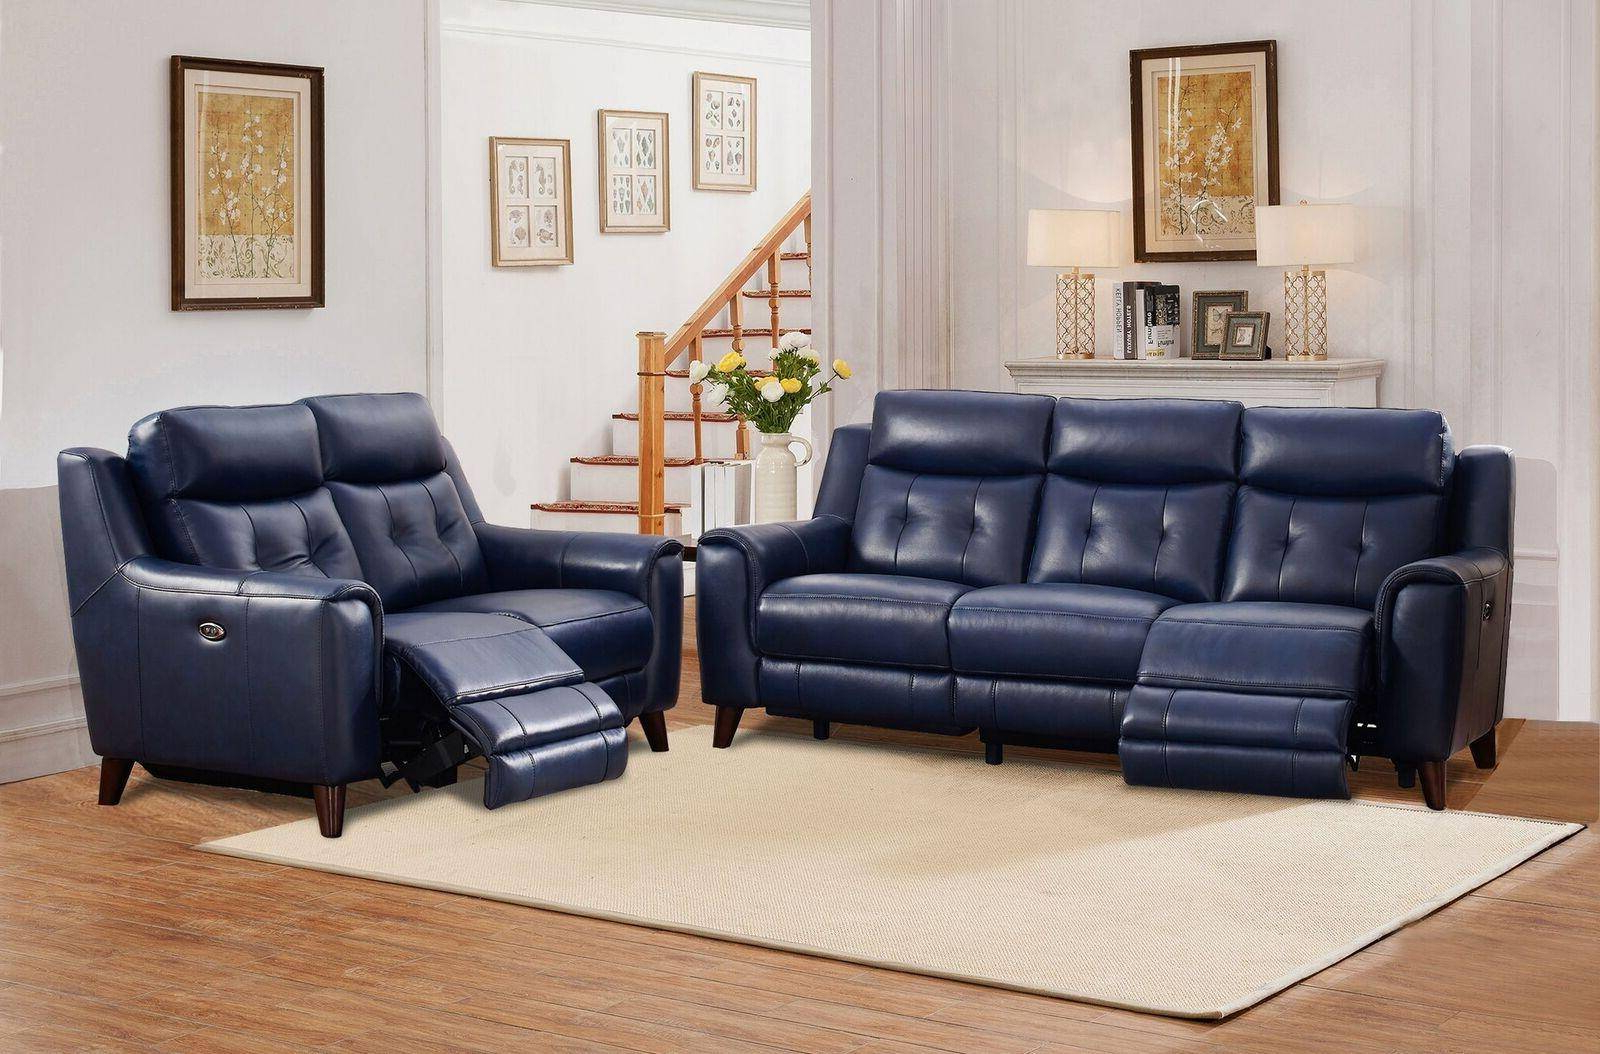 Well Liked Buy Amax Hydeline Hastings Reclining Sofa Set 3 Pcs In In Bloutop Upholstered Sectional Sofas (View 11 of 25)